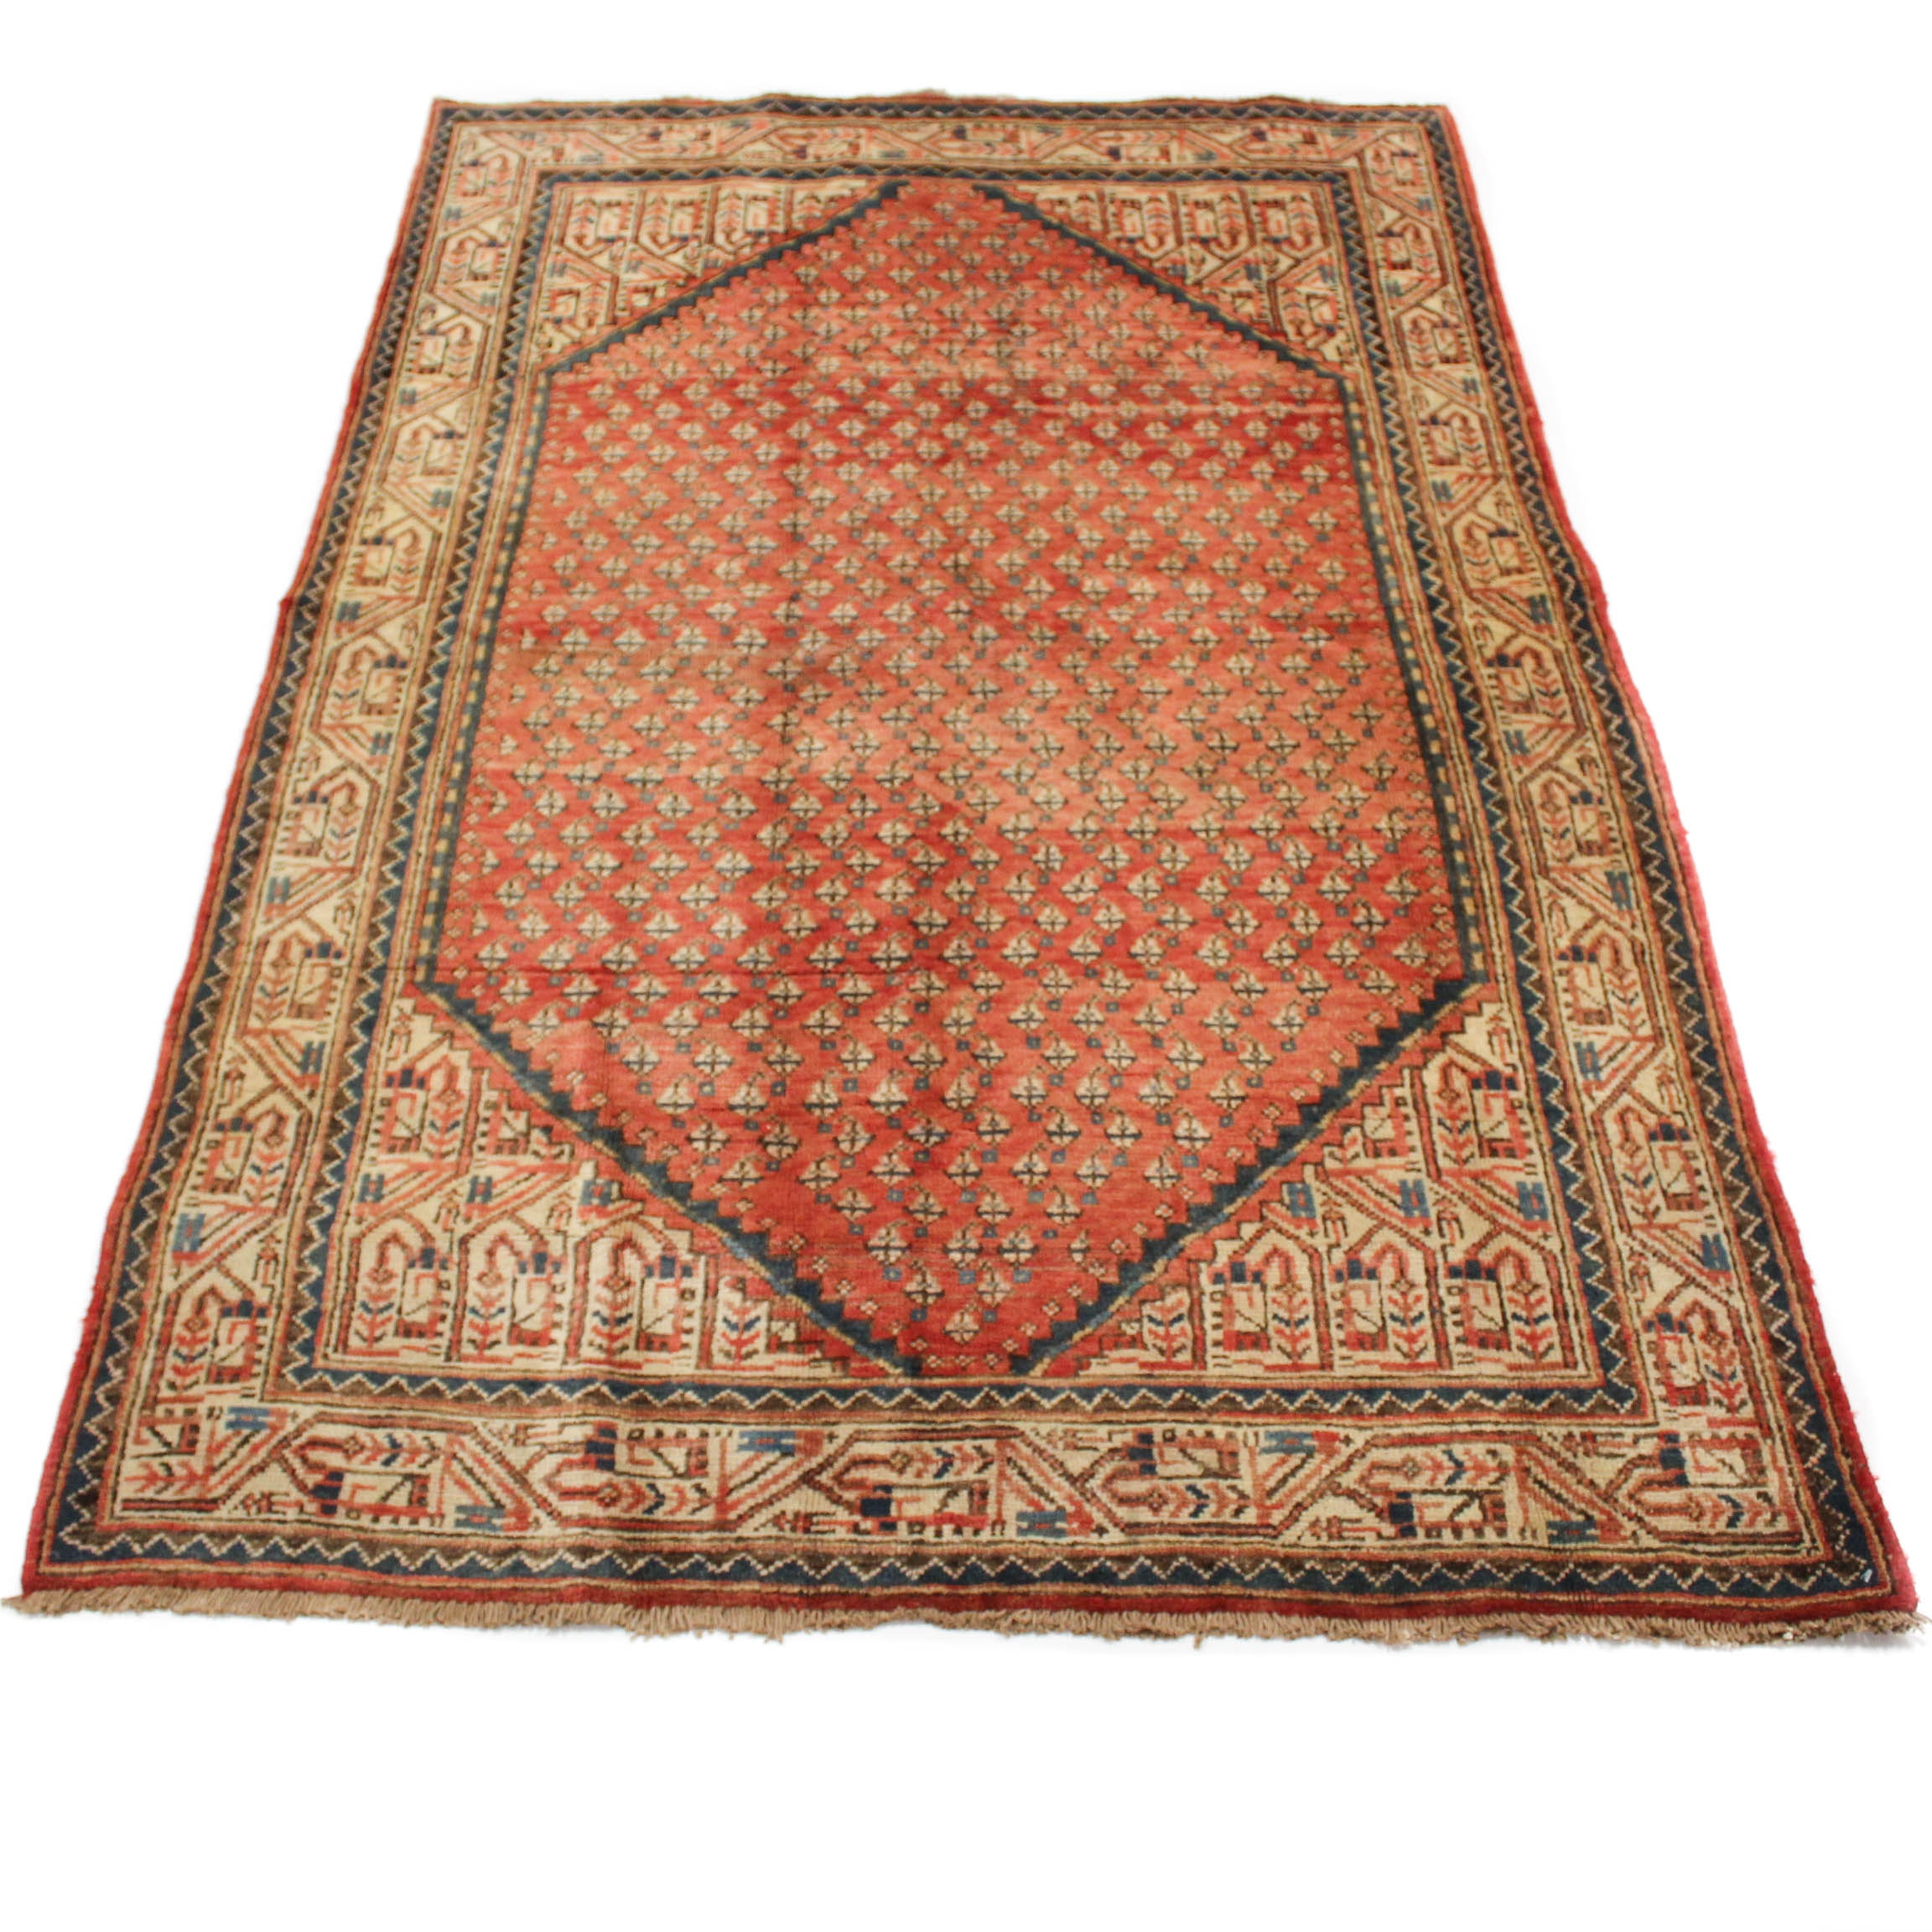 Semi-Antique Hand-Knotted Persian Mir Serabend Area Rug